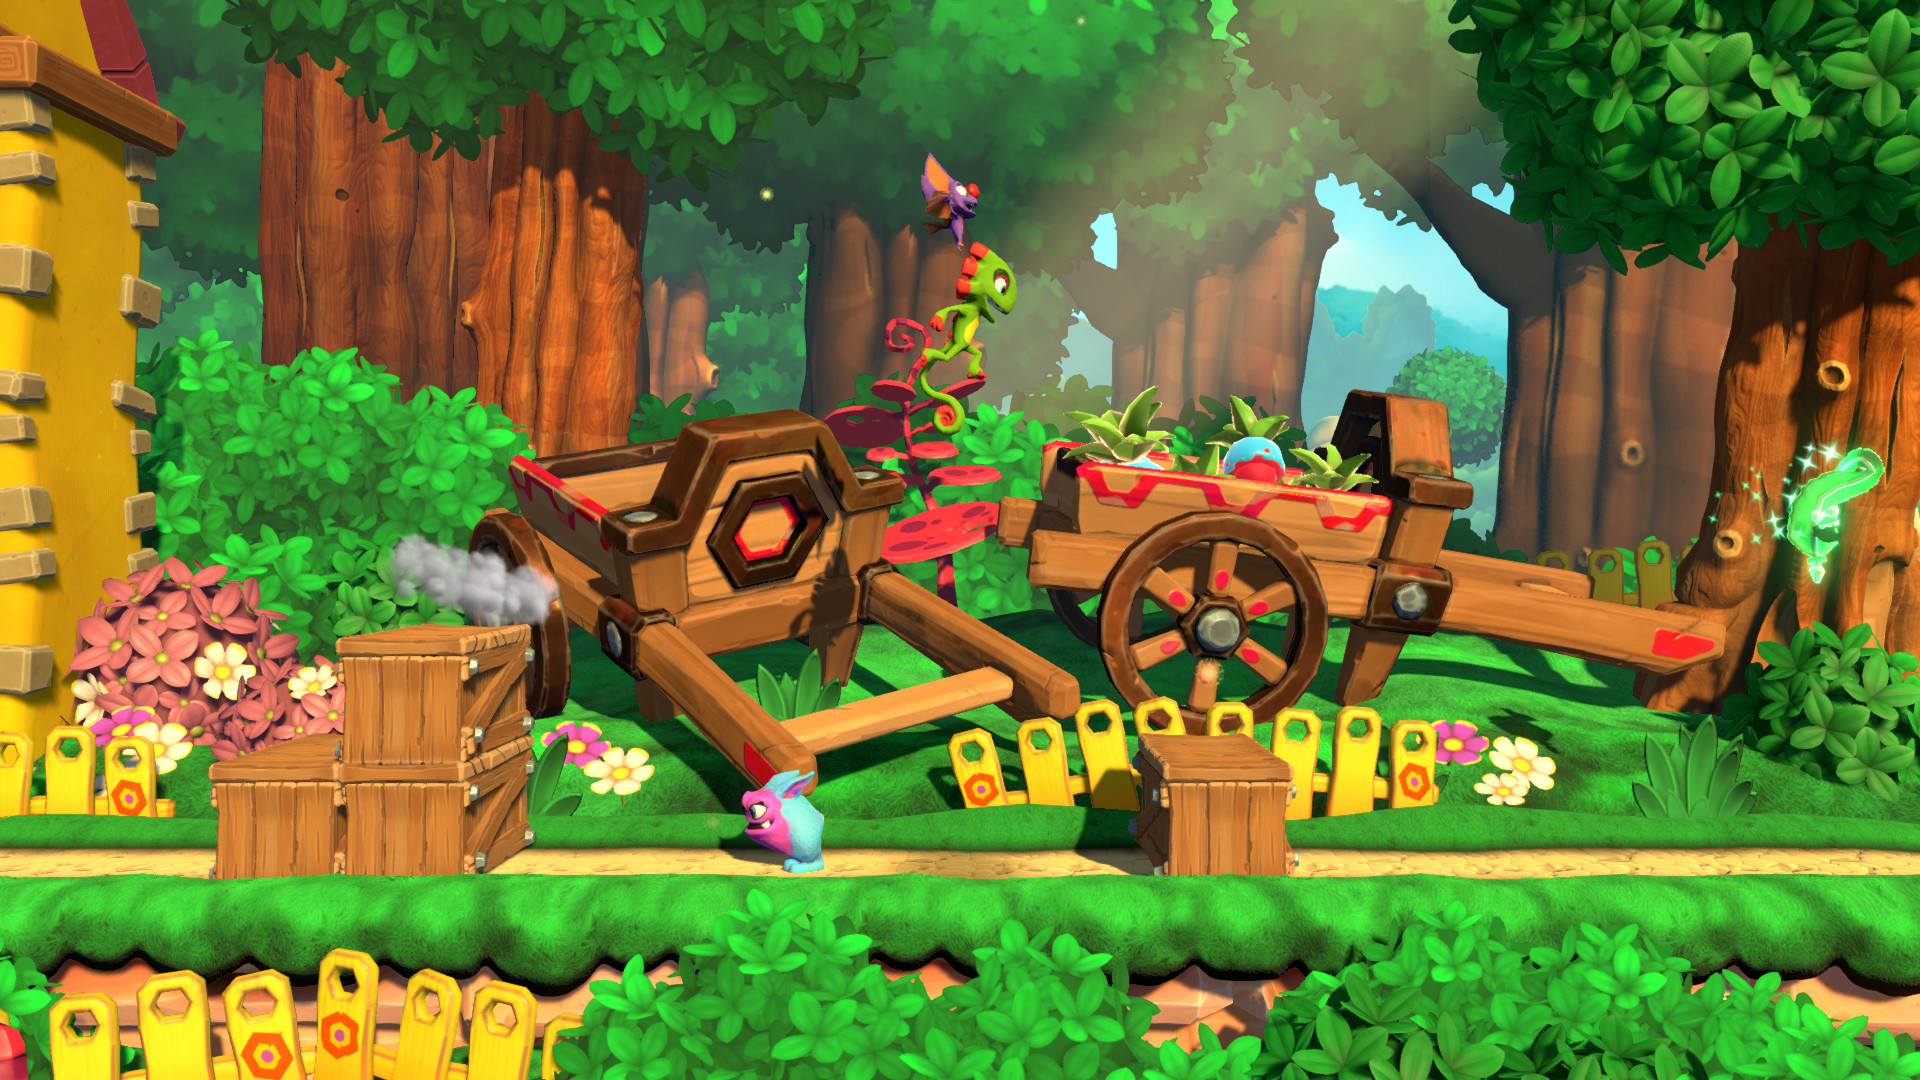 Yooka-Laylee and the Impossible Lair goes to bat in October